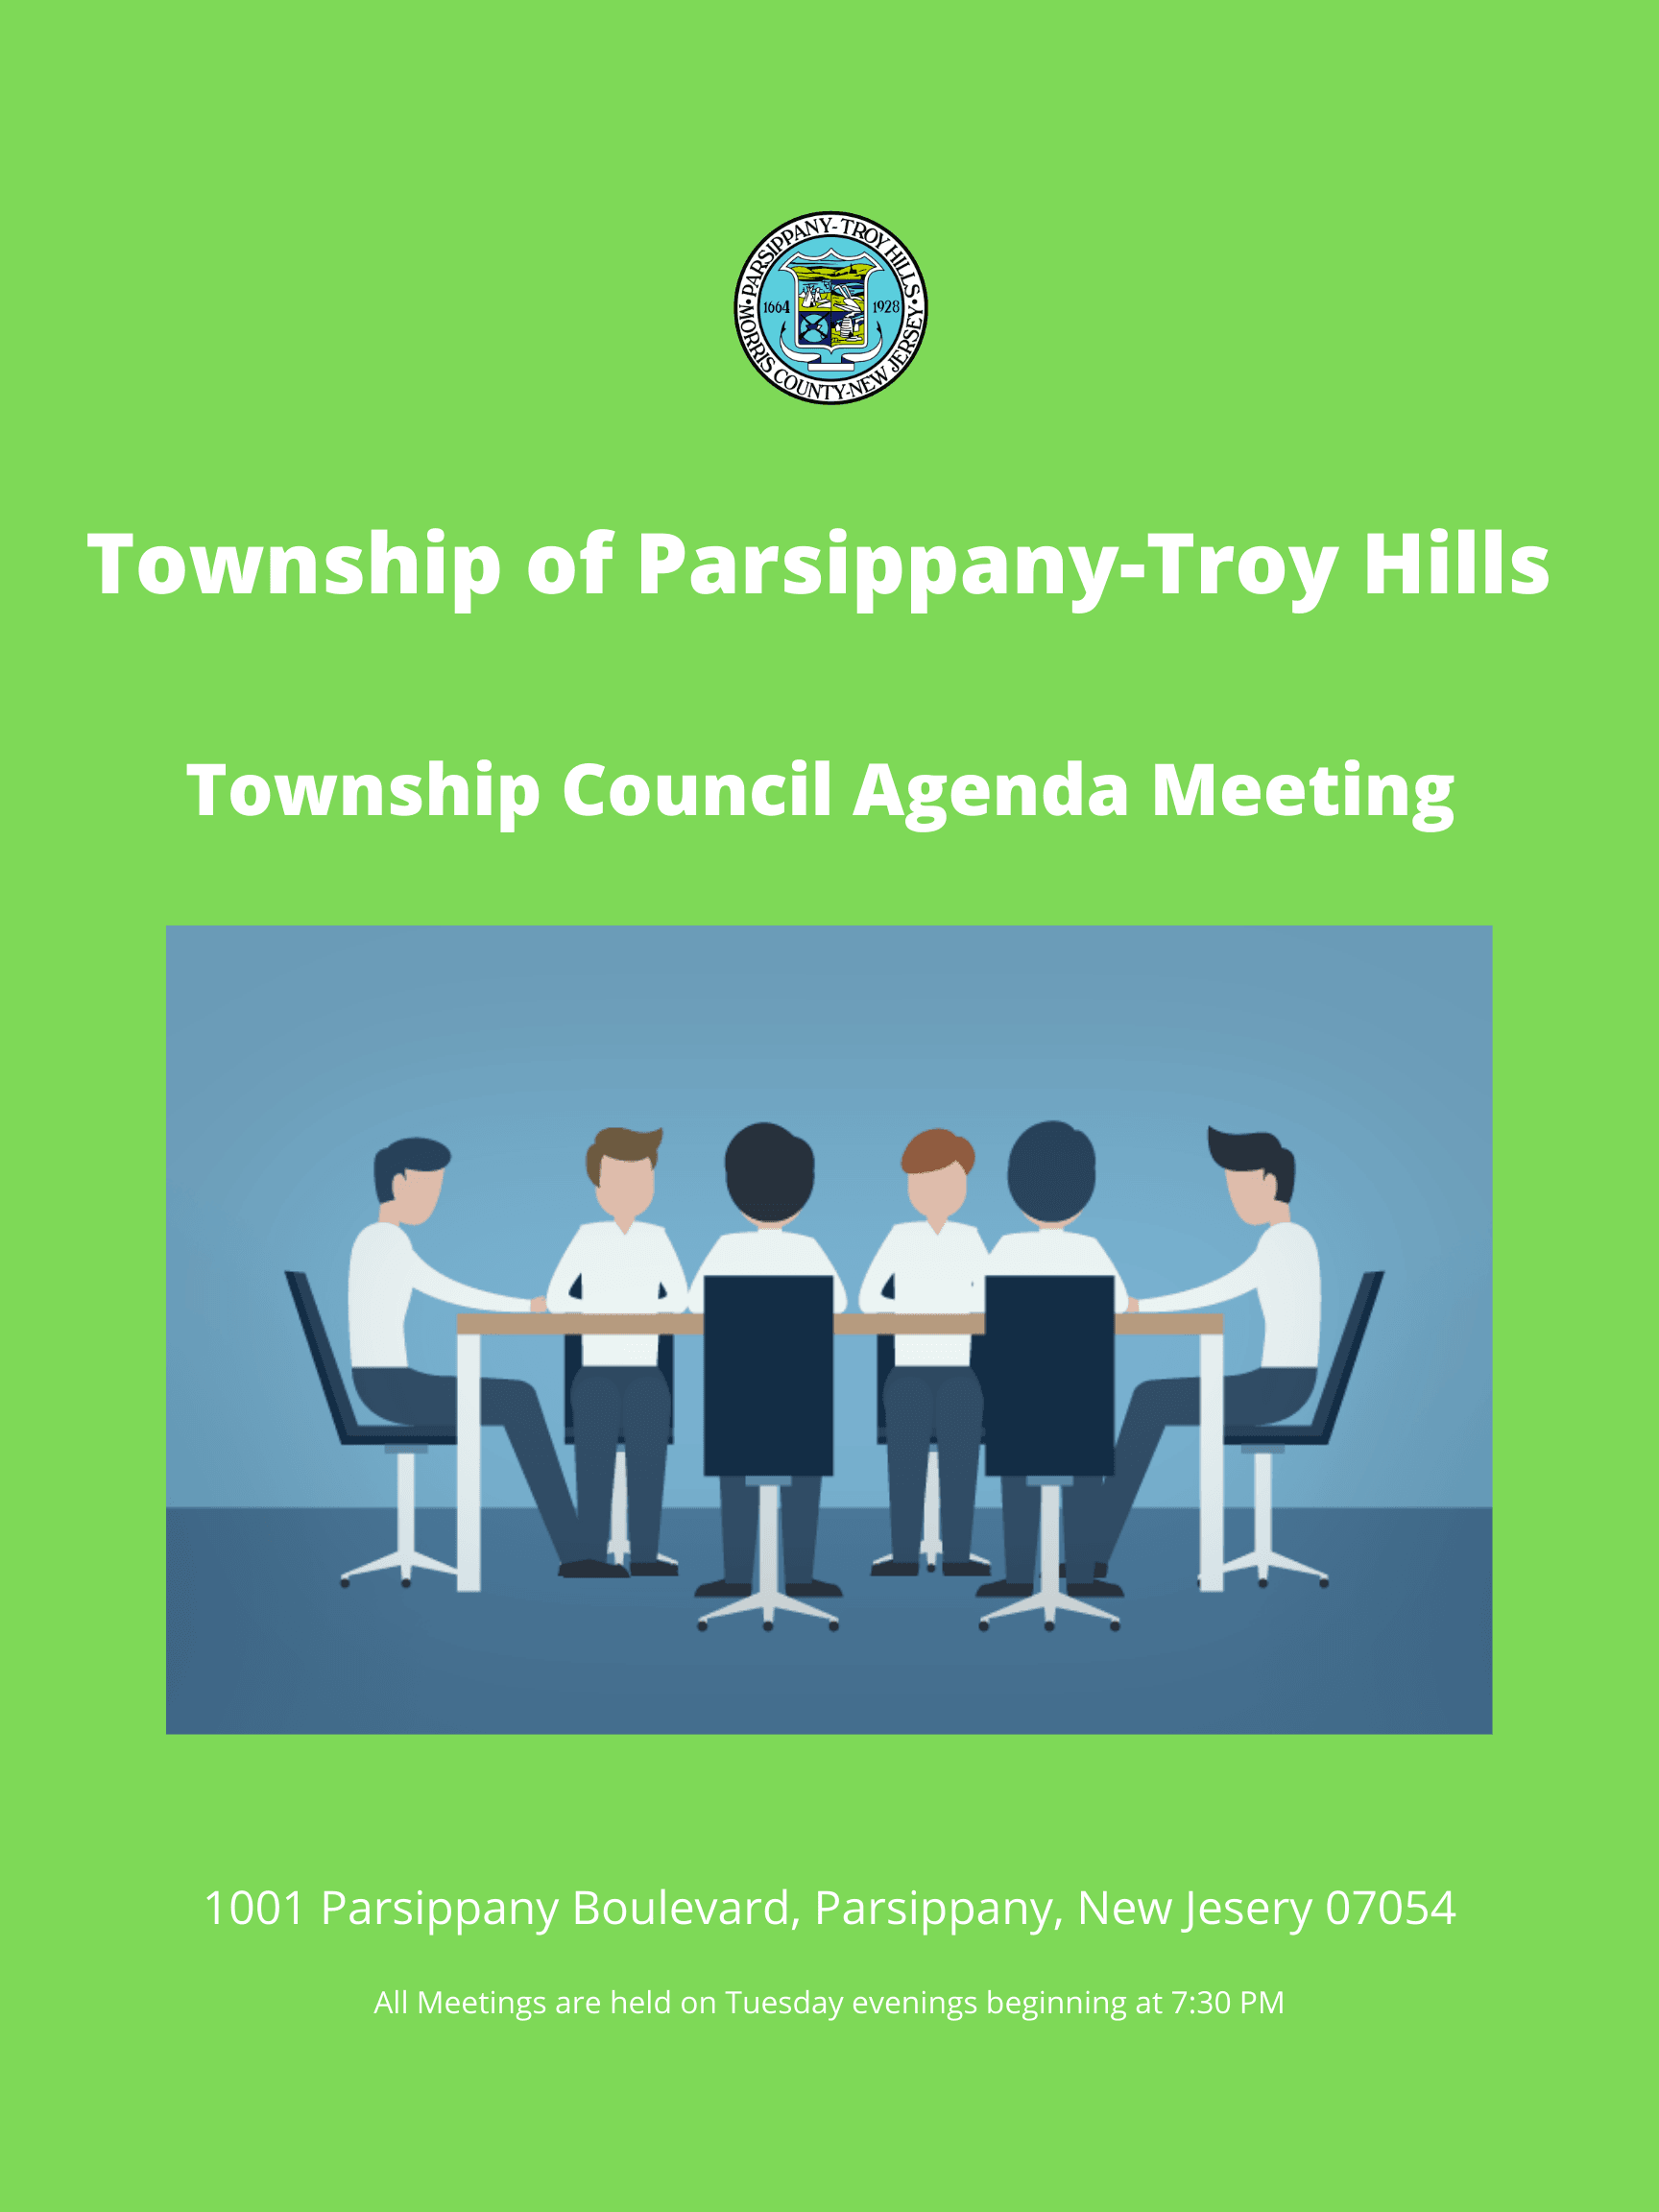 Township of Parsippany-Troy Hills Council Agenda Meeting